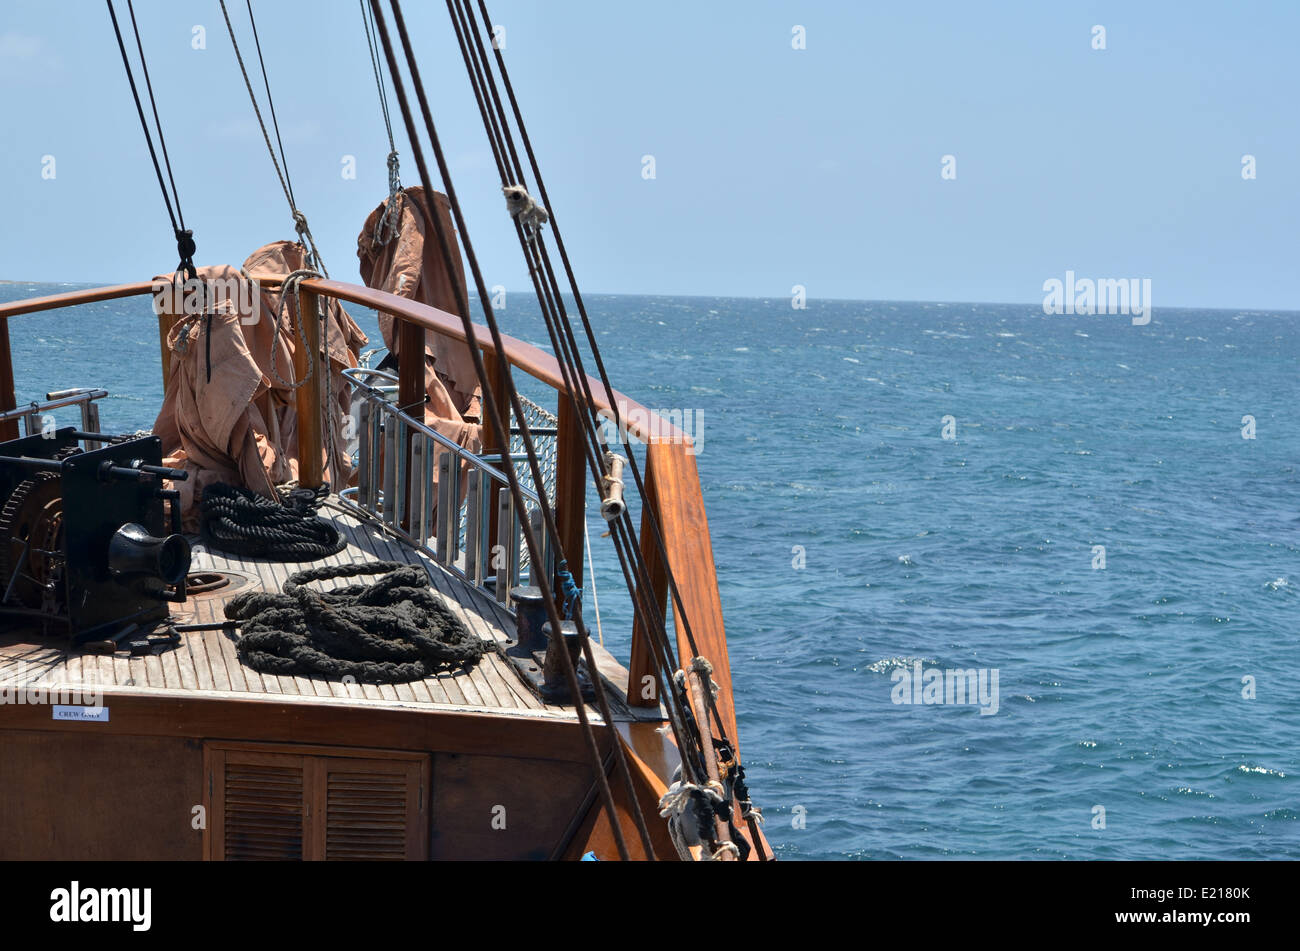 Rigging on the Jolly Roger II sailing off the coast of Cyprus - Stock Image